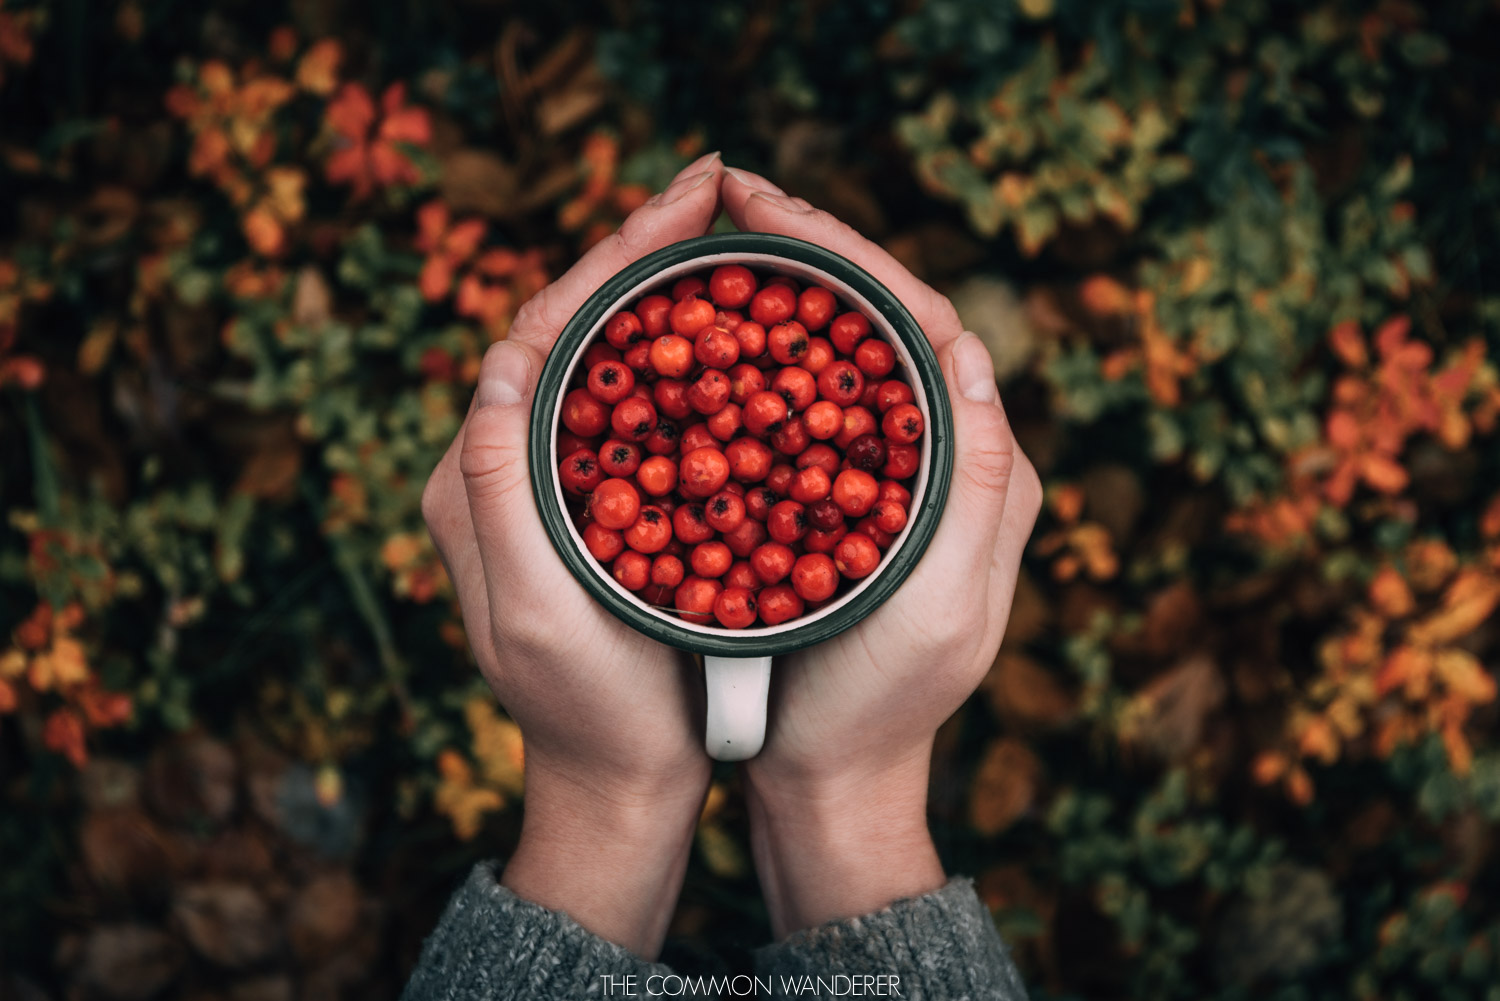 cup of berries in Swedish Lapland